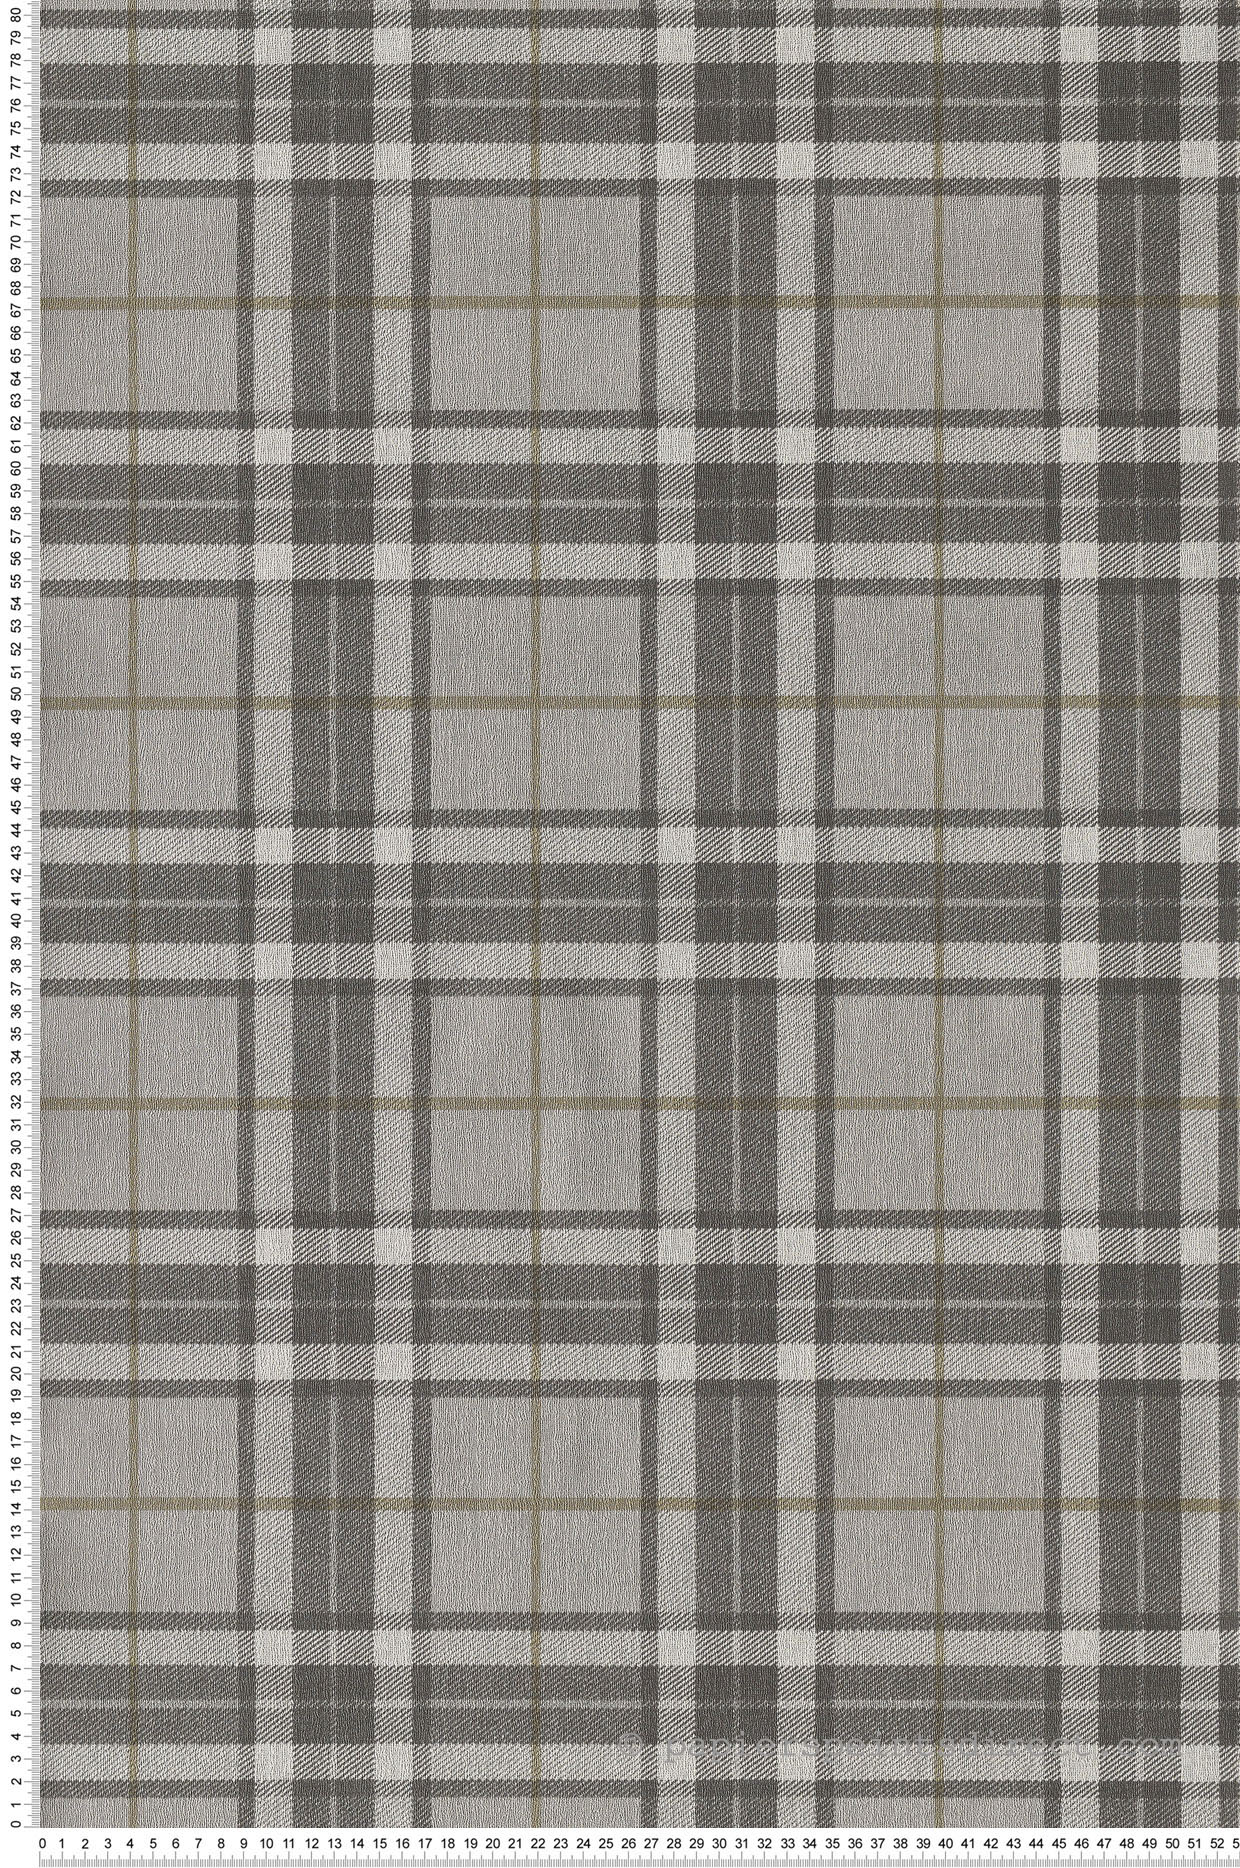 Papier peint Tartan charme gris - The Country House de Montecolino | Réf. MC-7865